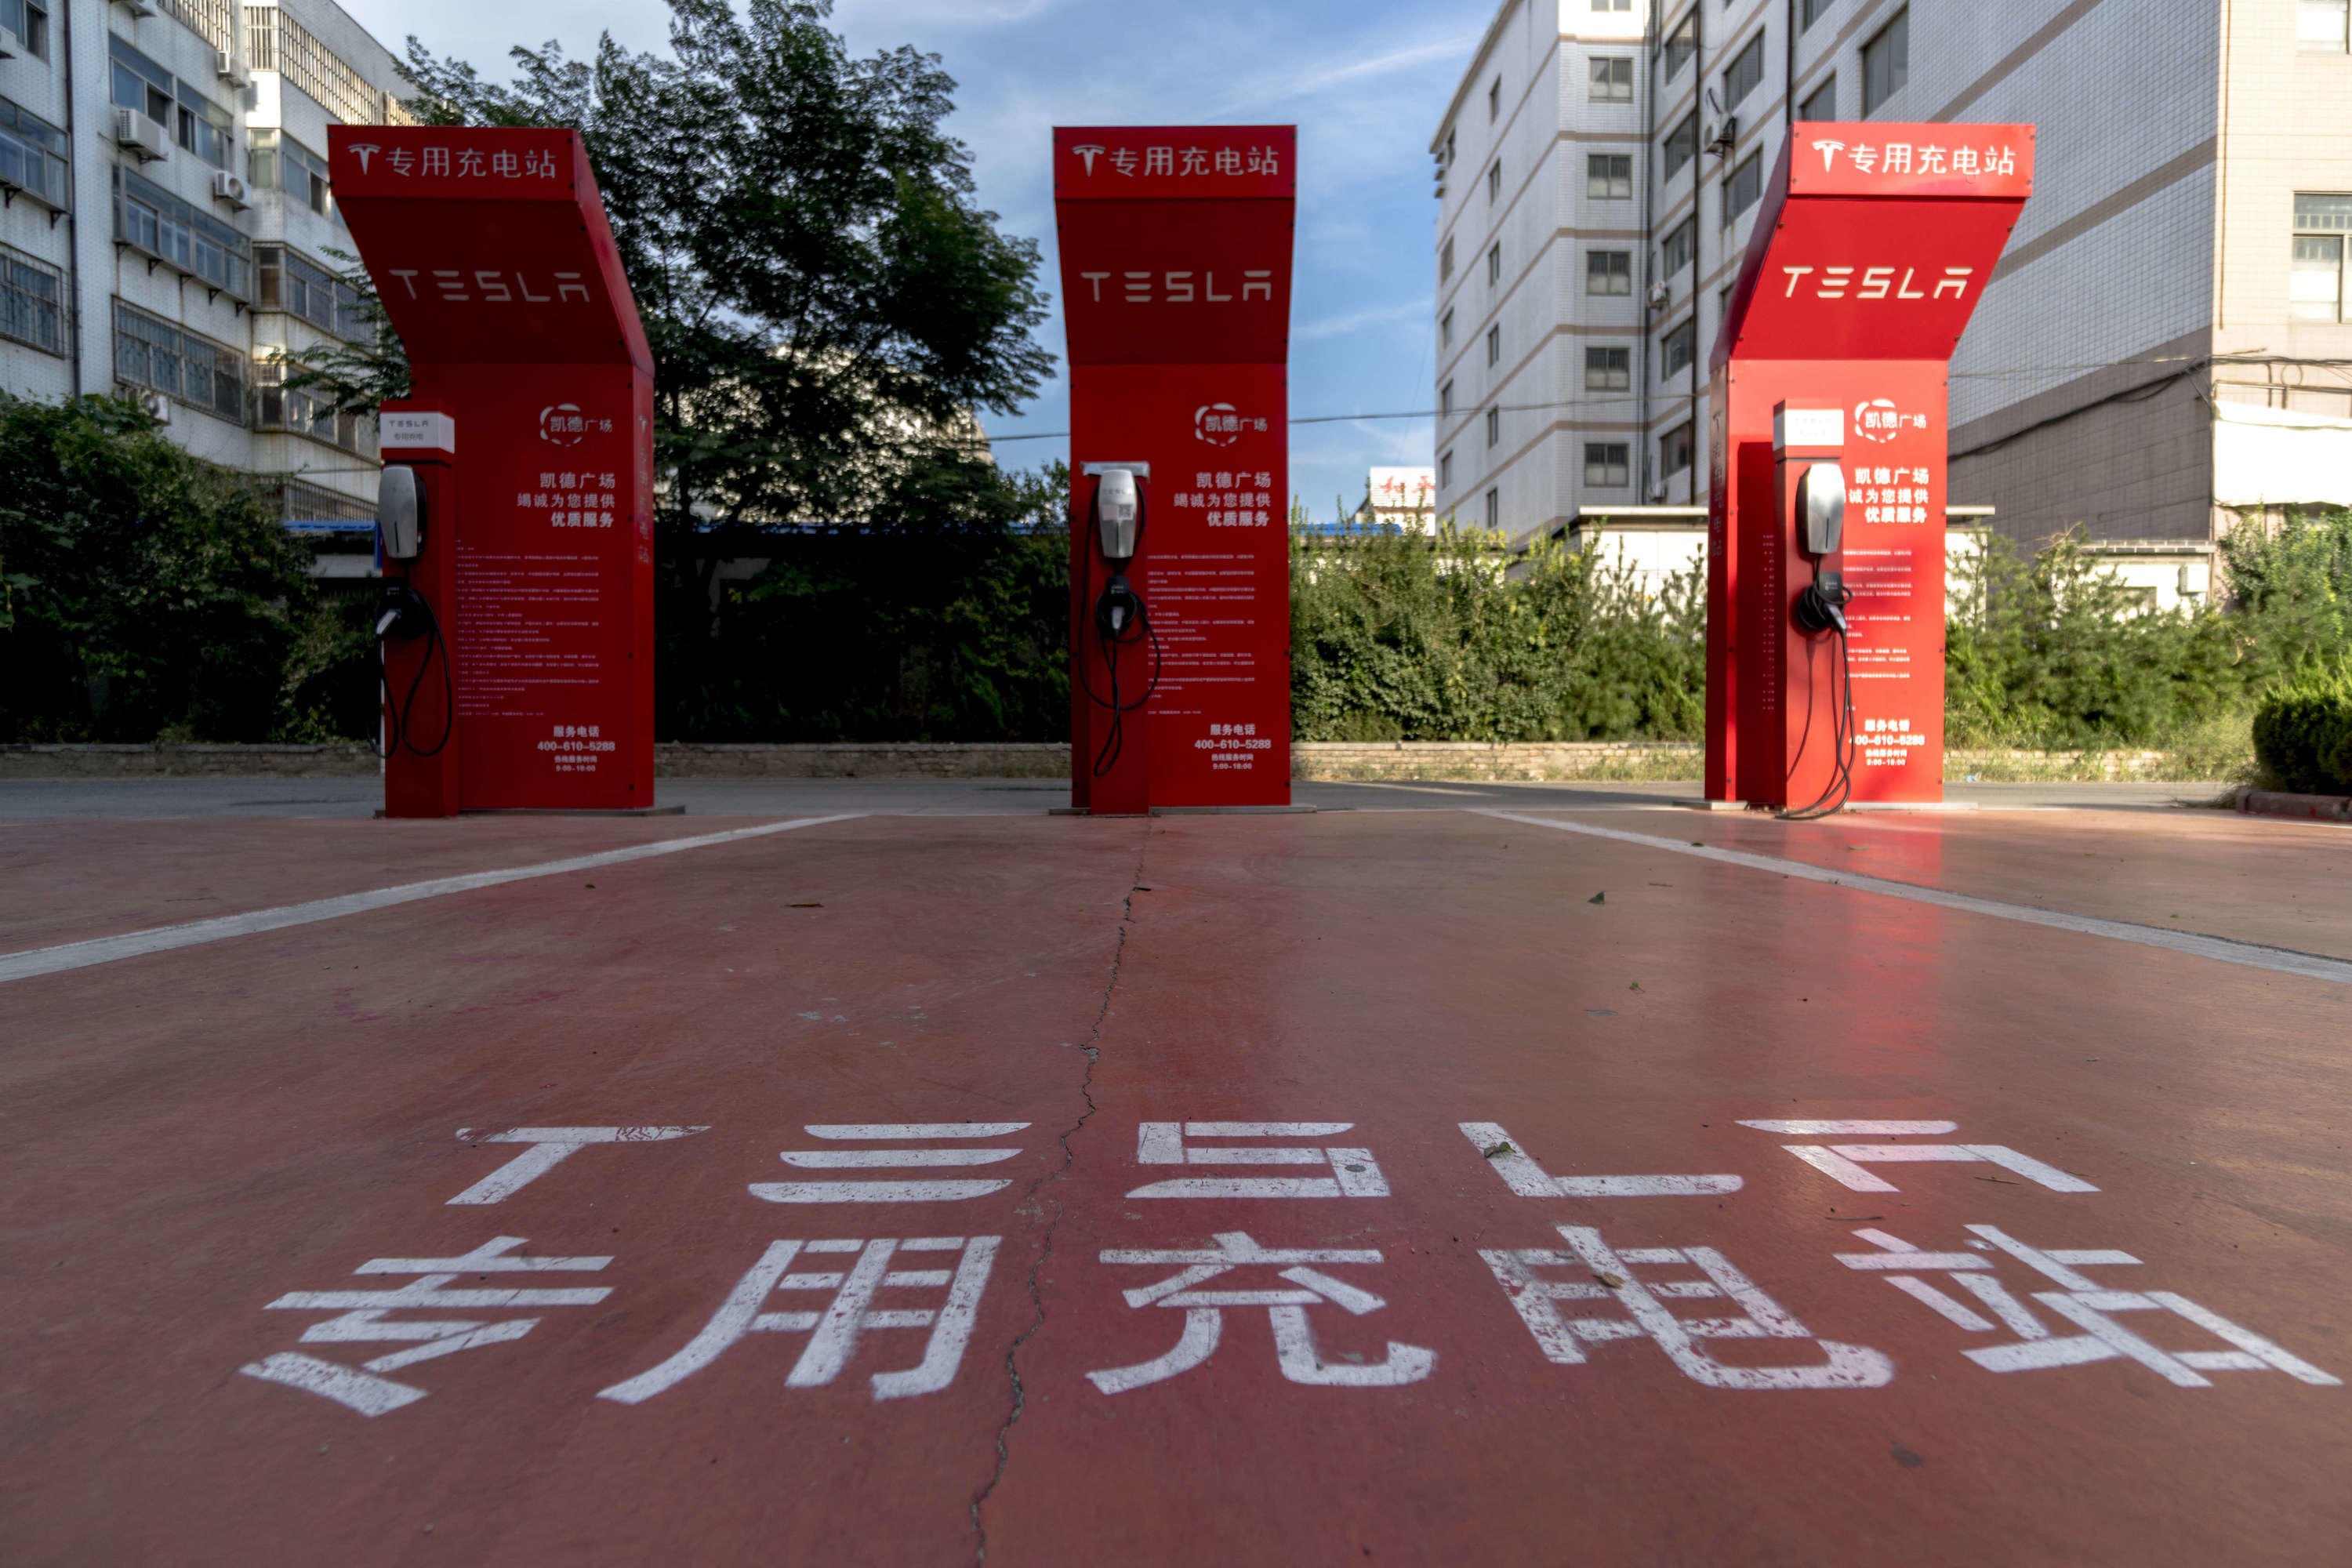 A vacant Tesla charging station on a parking lot beside a